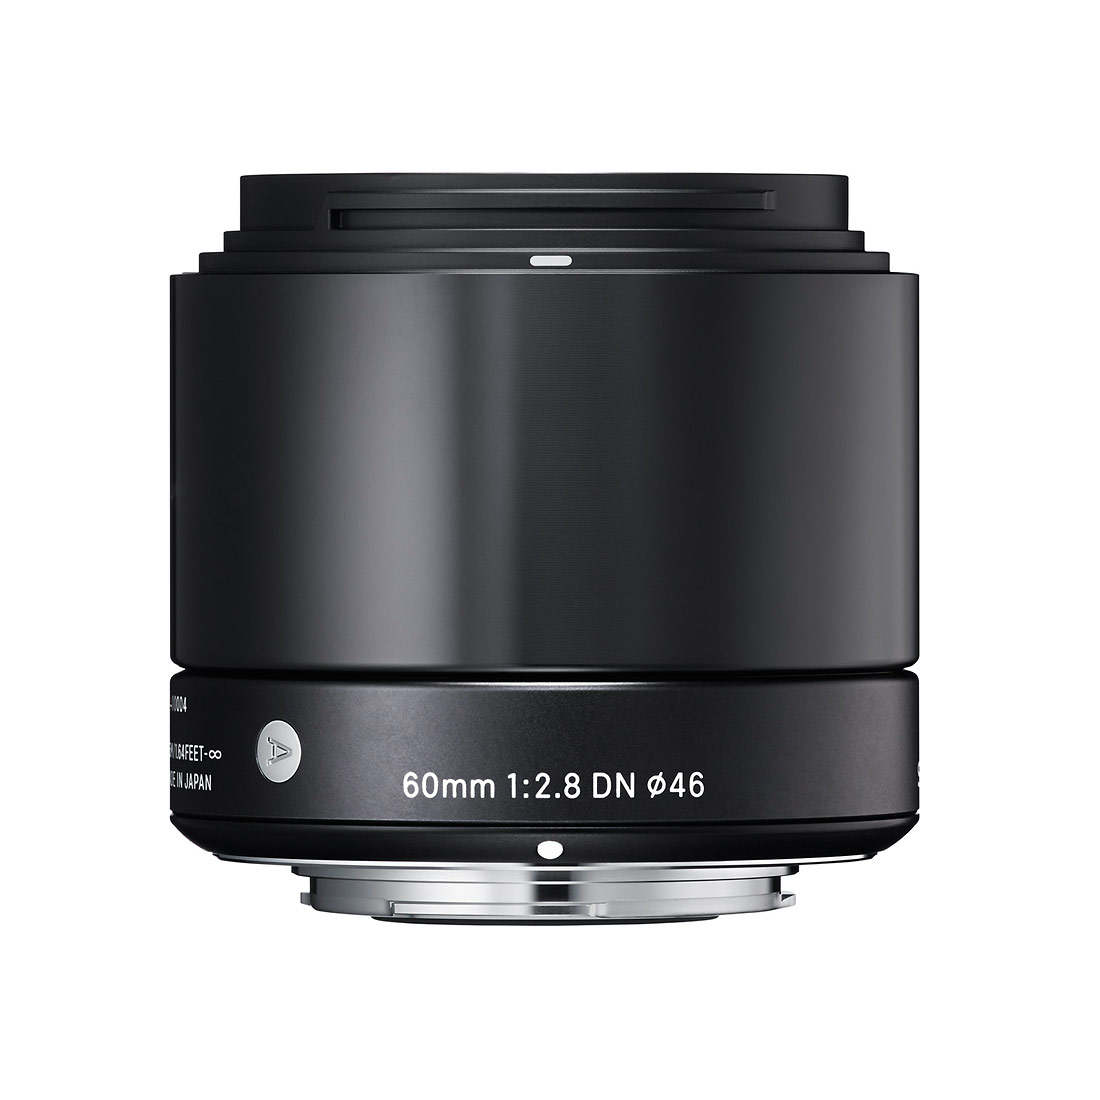 Sigma 60mm f/2.8 DN Lens For Sony NEX & Micro Four Thirds Mirrorless Cameras